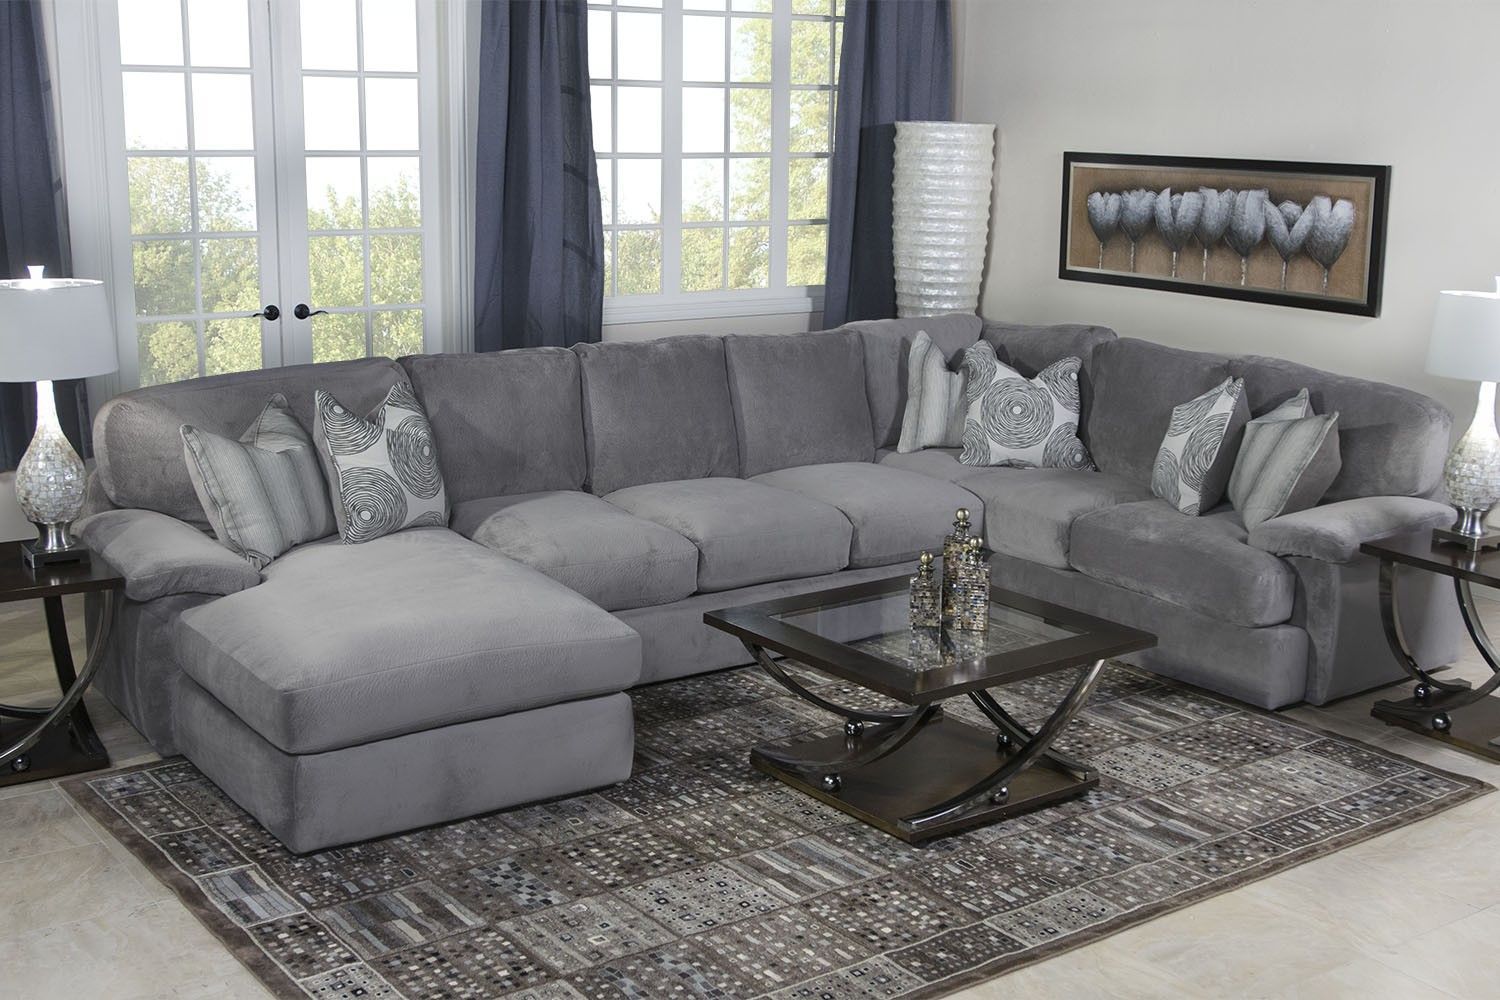 Key west sectional living room in gray living room mor for Designs of chairs for living room